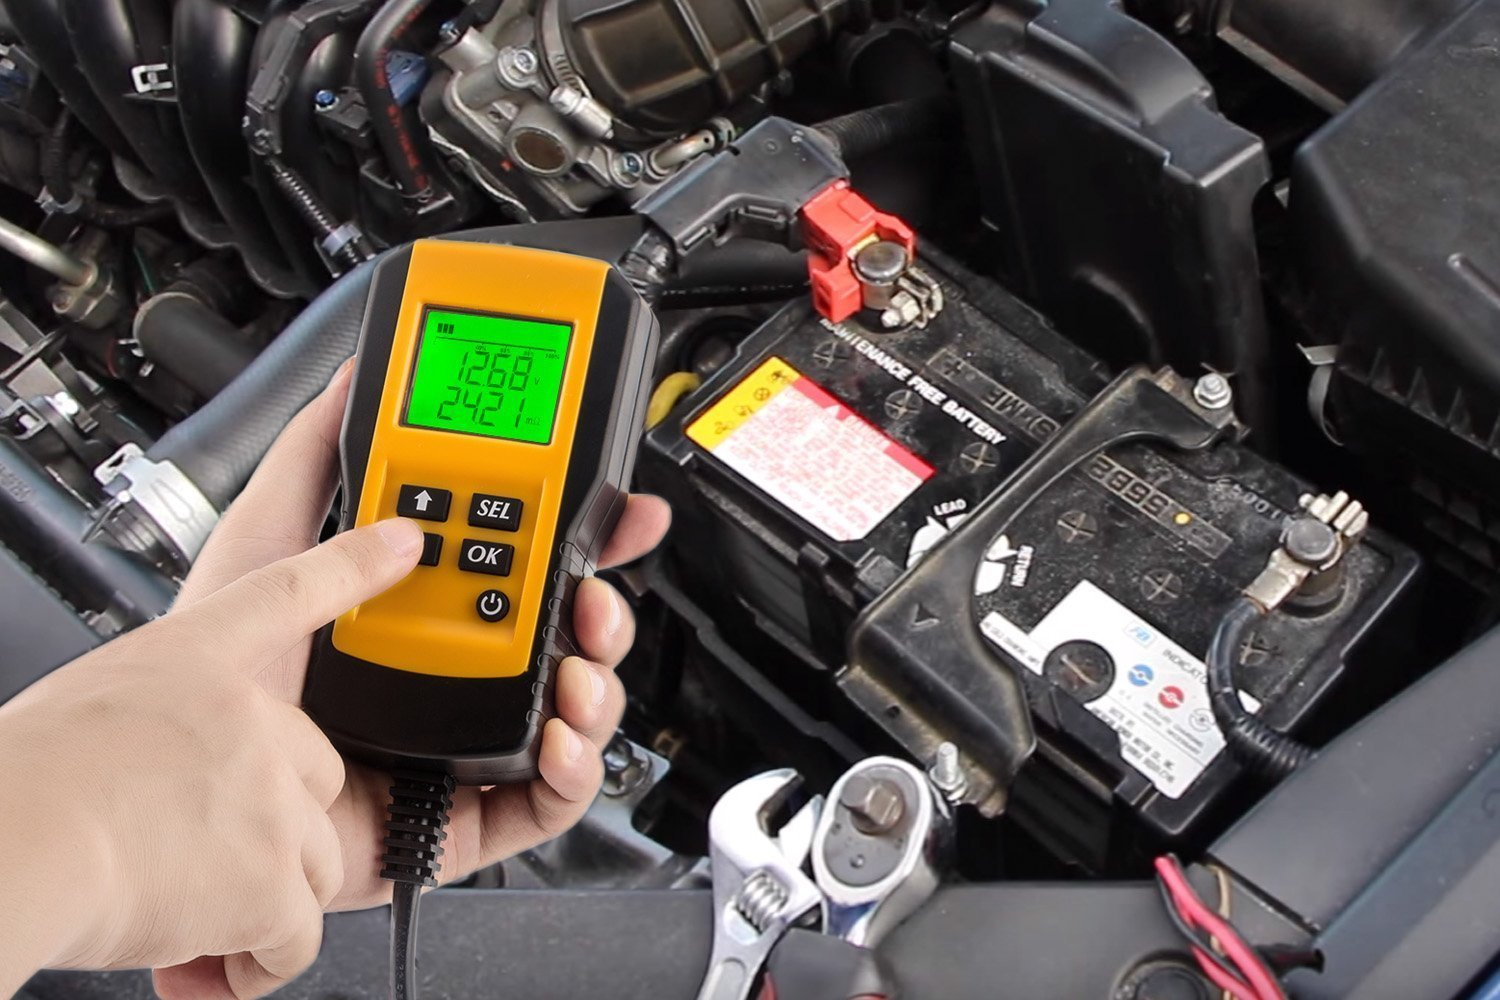 Car Battery Load Tester Digital 12V Car Battery Tester Automotive Battery Load Tester and Analyzer Of Battery Life Percentage,Voltage, Resistance and CCA Value For Gel, AGM, Flood, Deep Cycle Check by Enbar (Image #4)